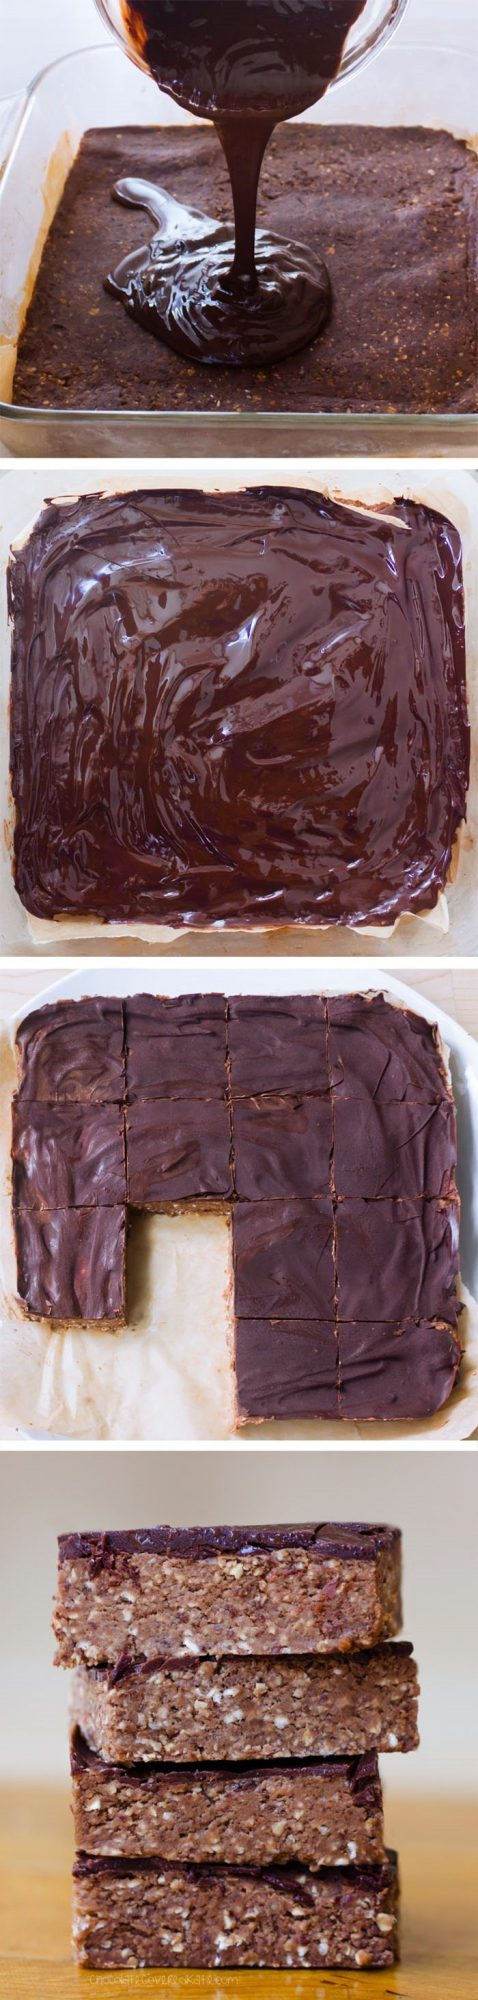 Chocolate Breakfast Bars – Ingredients: 1 cup rolled oats, 3 tbsp cocoa powder, 1 tbsp vanilla extract, 1 1/2 cups… Full recipe: https://chocolatecoveredkatie.com @choccoveredkt